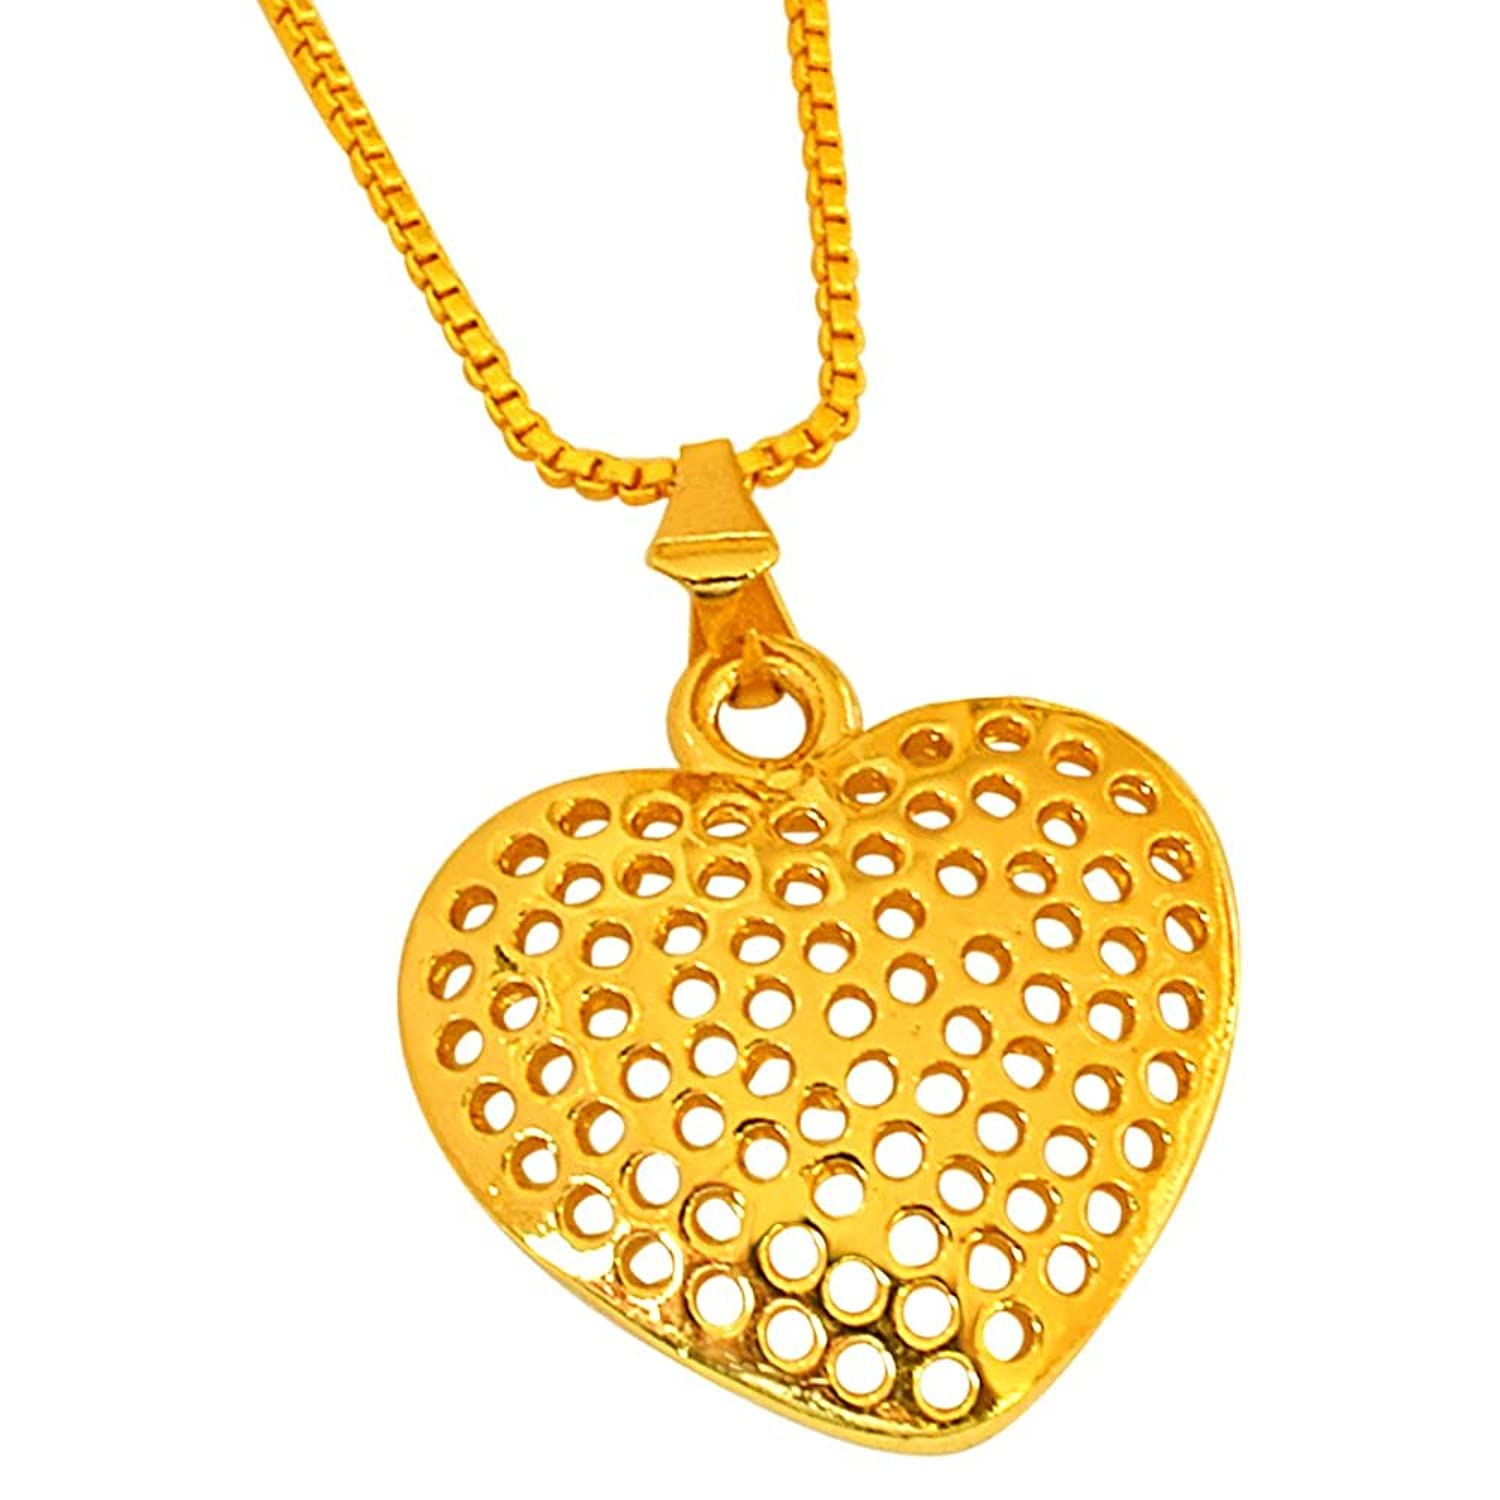 Buy surat diamond small heart shaped gold plated pendant with chain buy surat diamond small heart shaped gold plated pendant with chain for girls sds263 online at low prices in india amazon jewellery store amazon mozeypictures Gallery